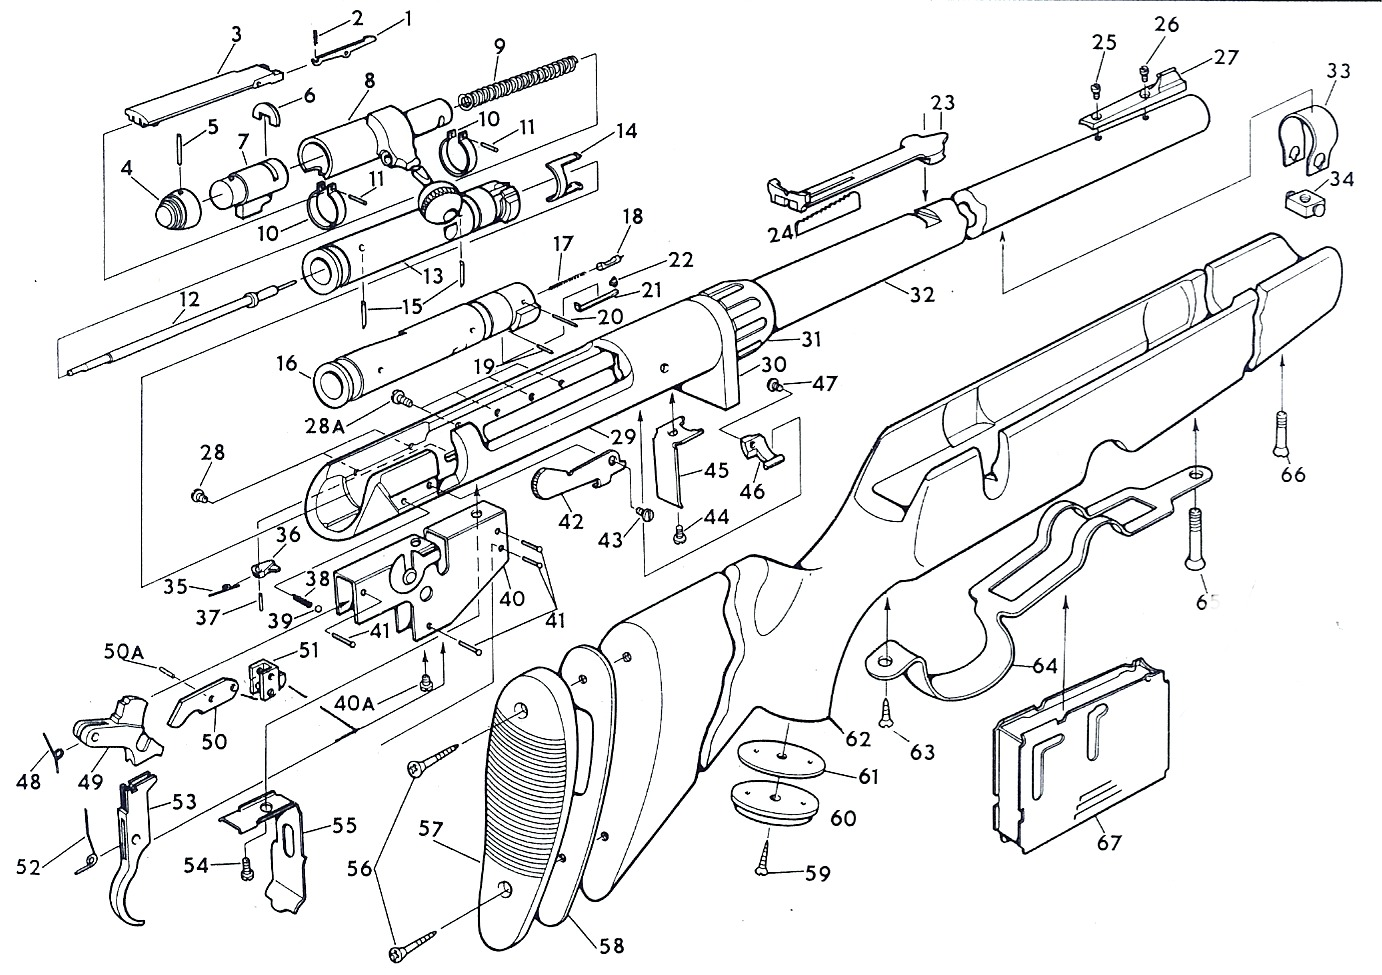 Winchester Model 21 Parts Diagram